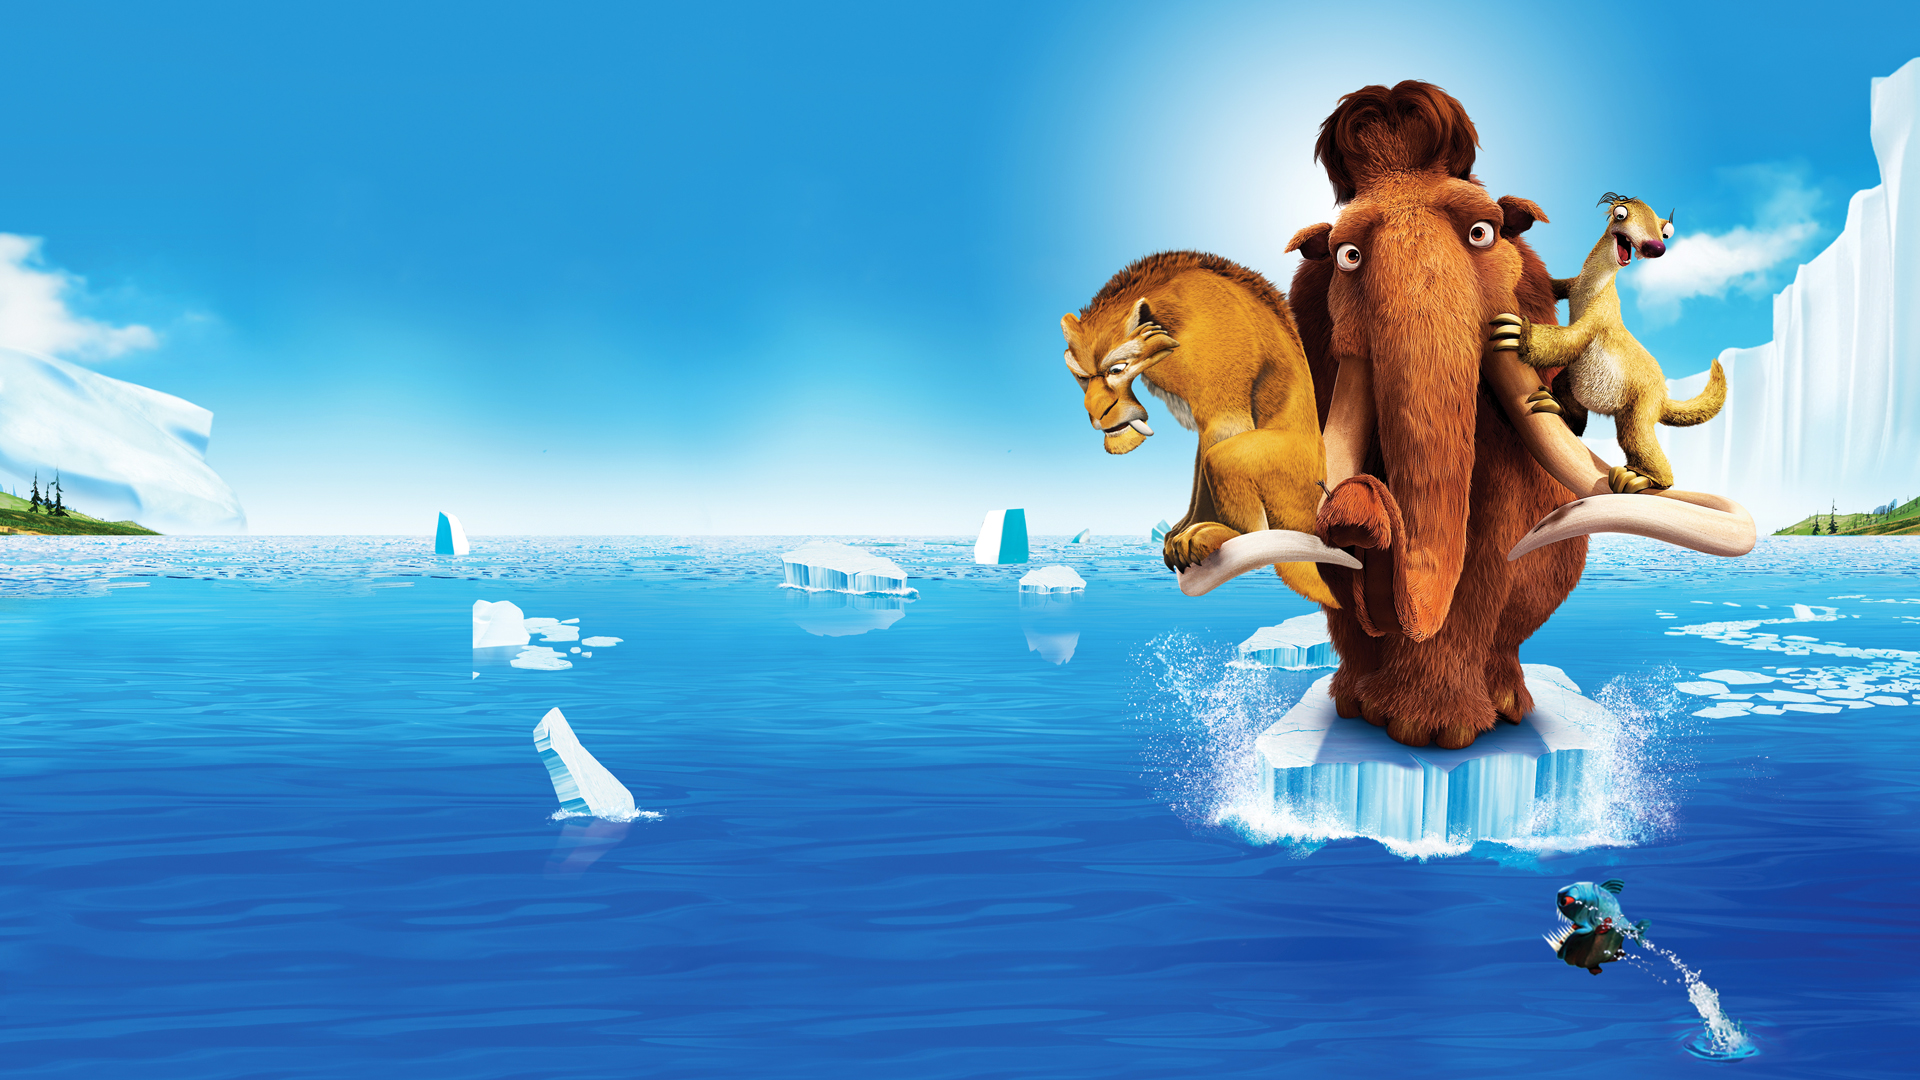 Ice Age Wallpaper - WallpaperSafari